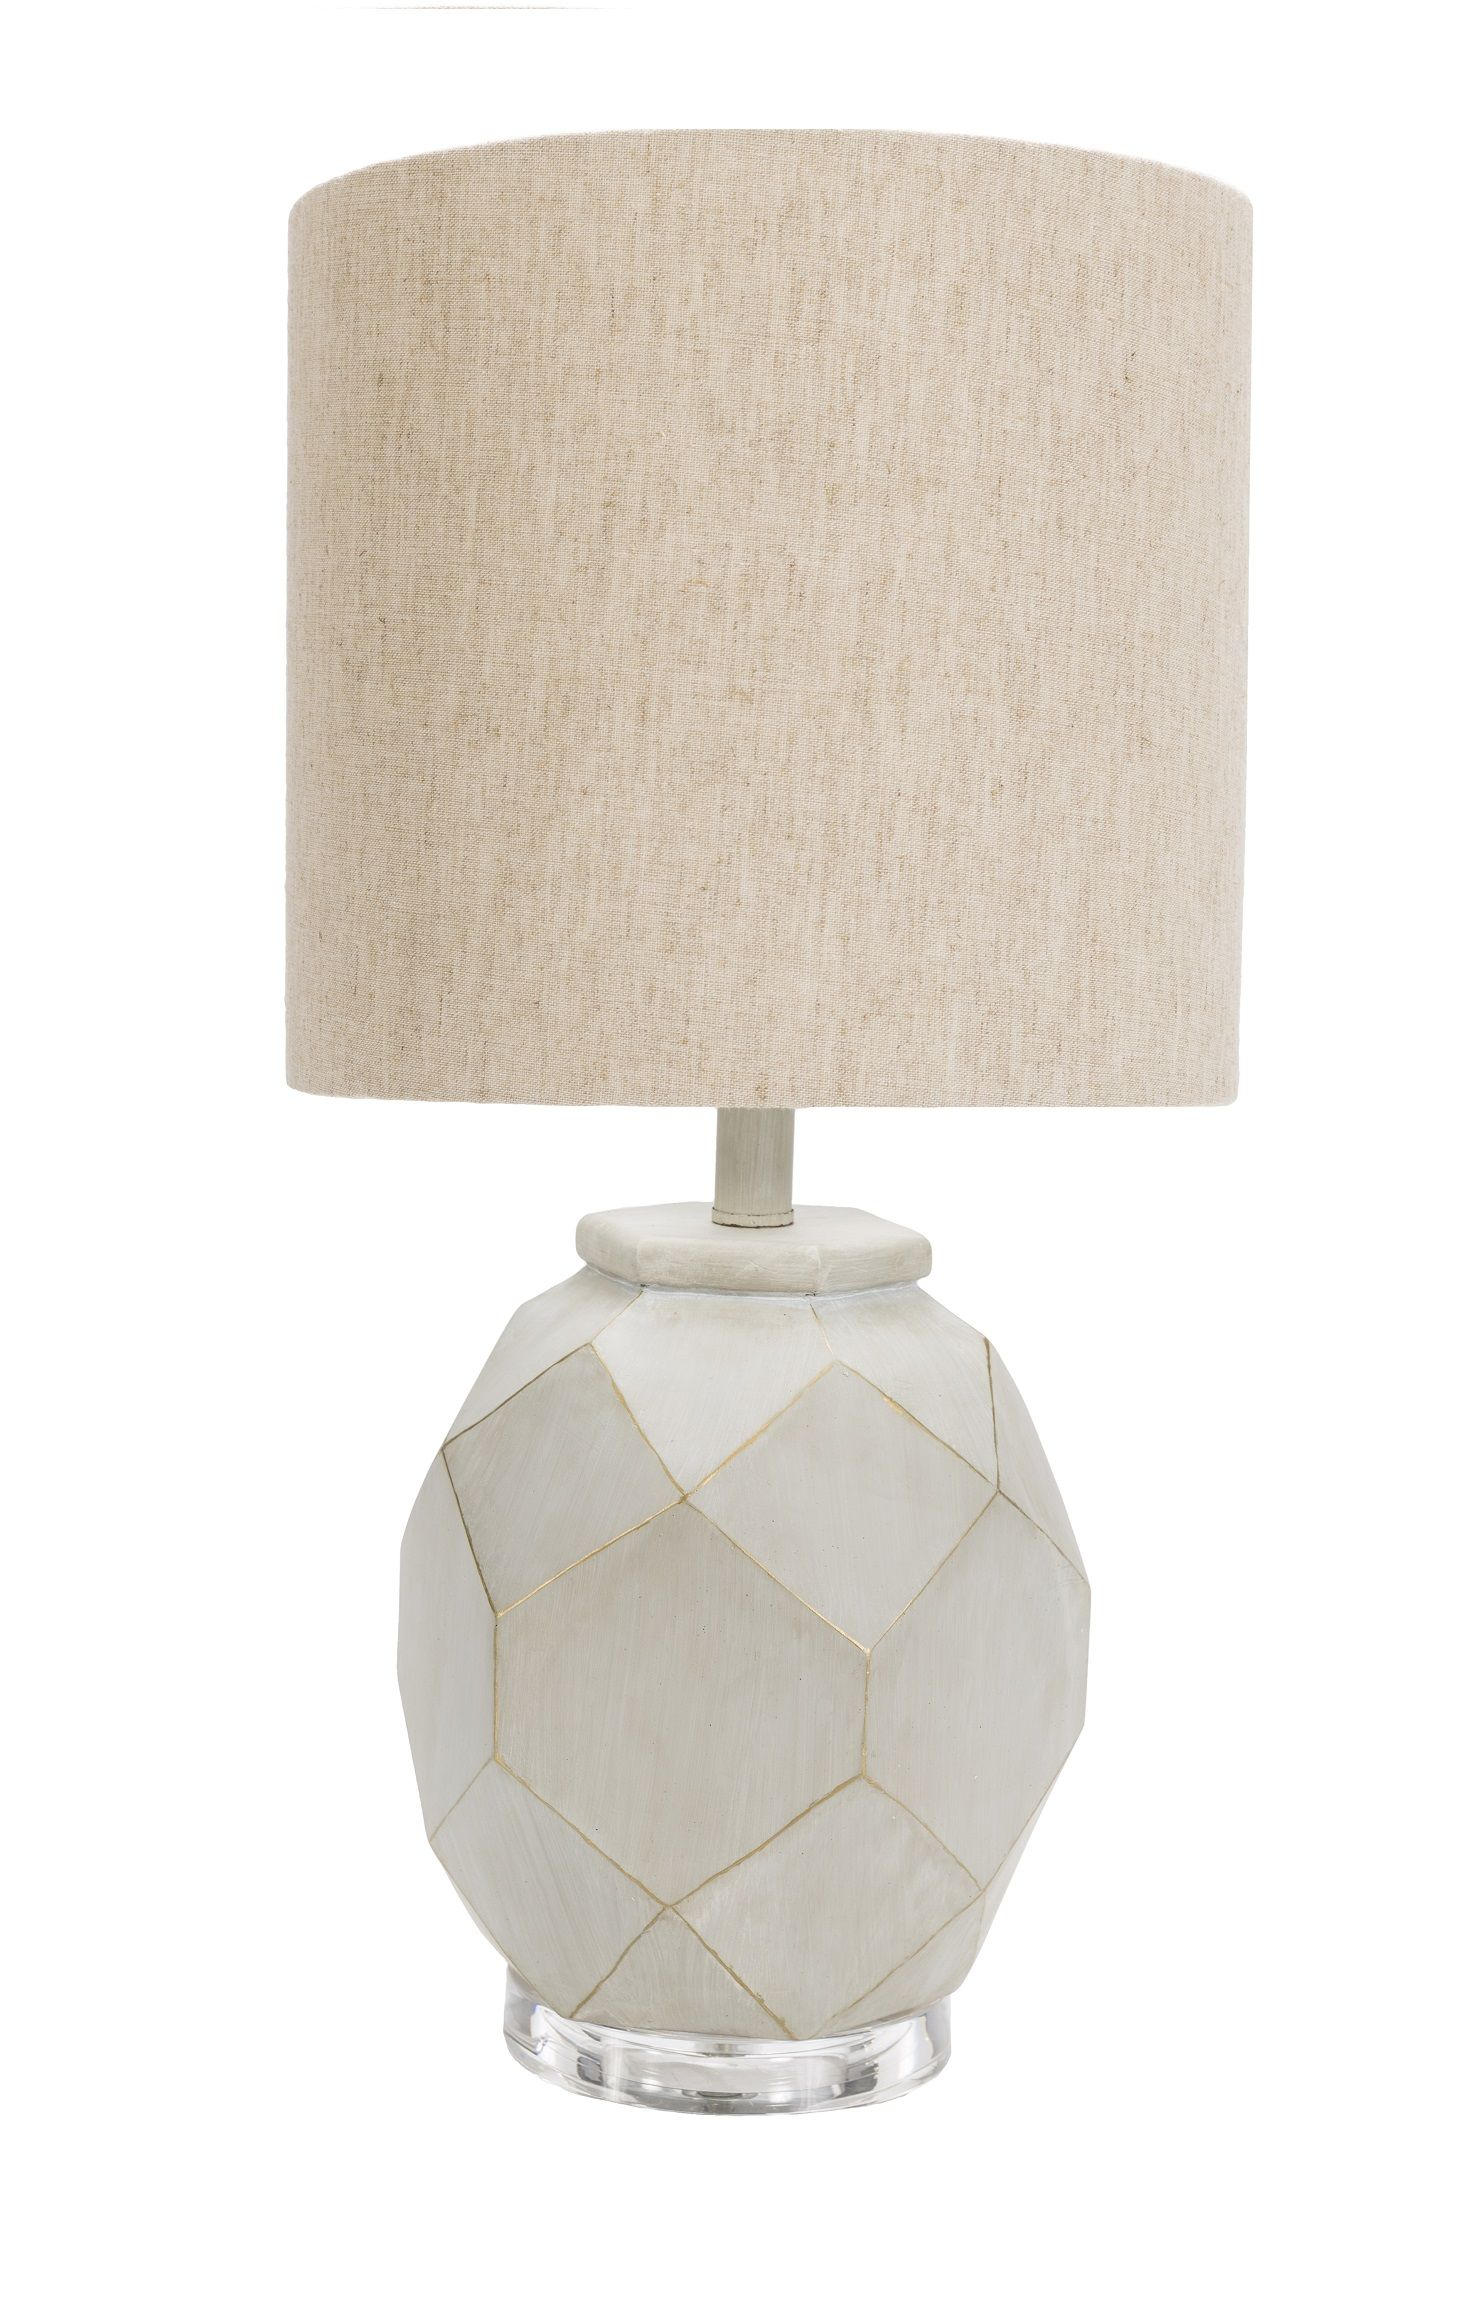 24 Abundant Kindness Eggshell White Table Lamp With Facet Look Base And Wheat Brown Drum Shade Table Lamp White Table Lamp Modern Table Lamp